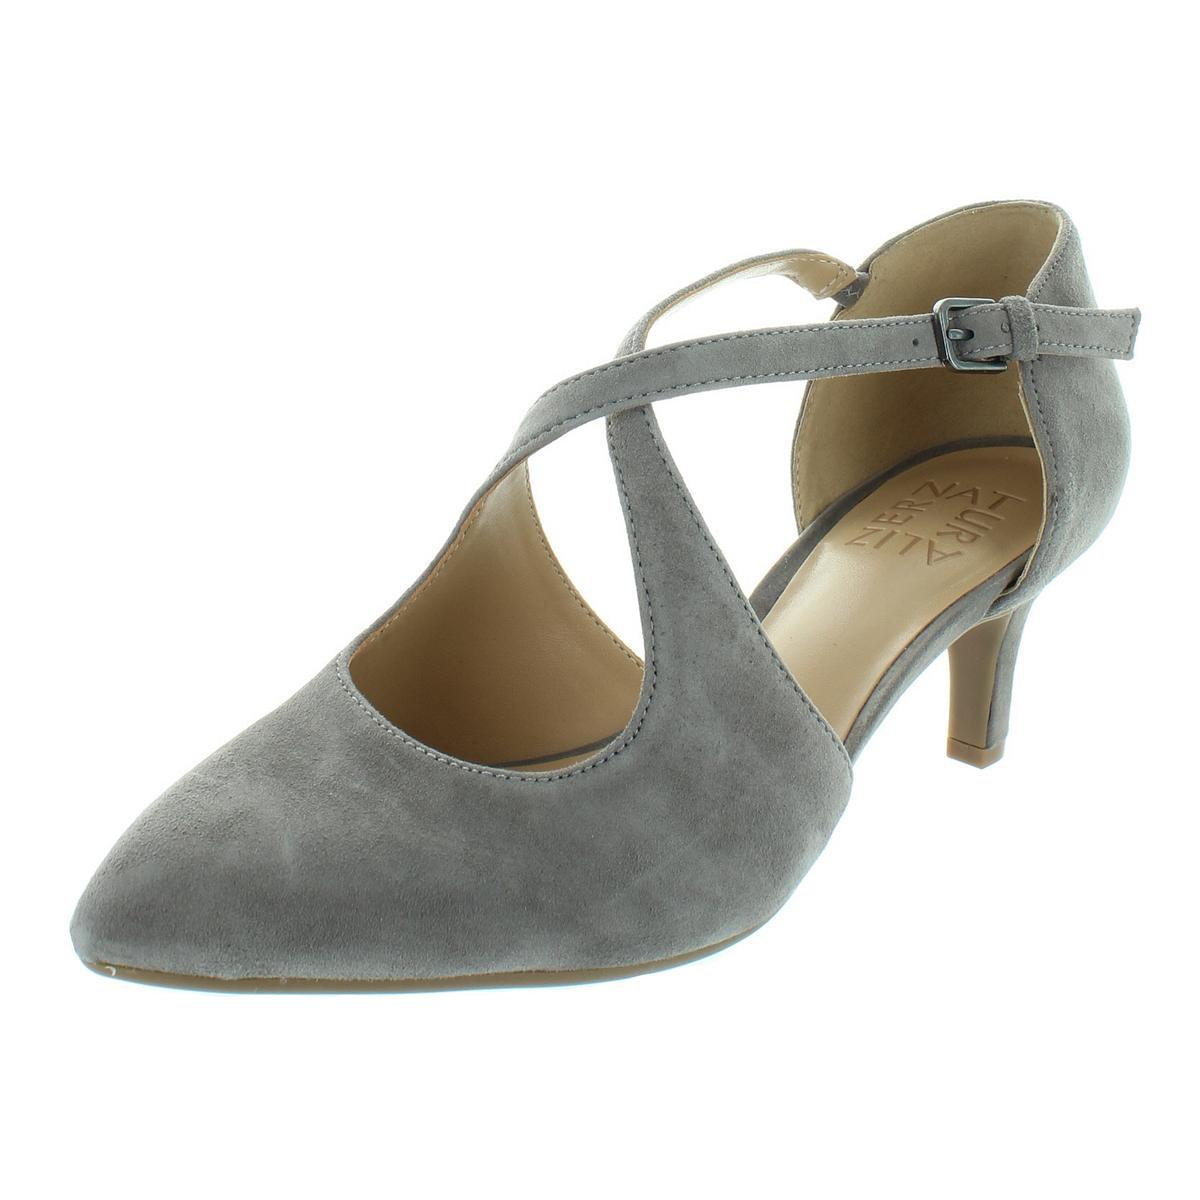 Naturalizer Naturalizer Naturalizer Damenschuhe Okira Padded Insole Pointed Toe D'Orsay Pumps Schuhes BHFO 6063 51078e